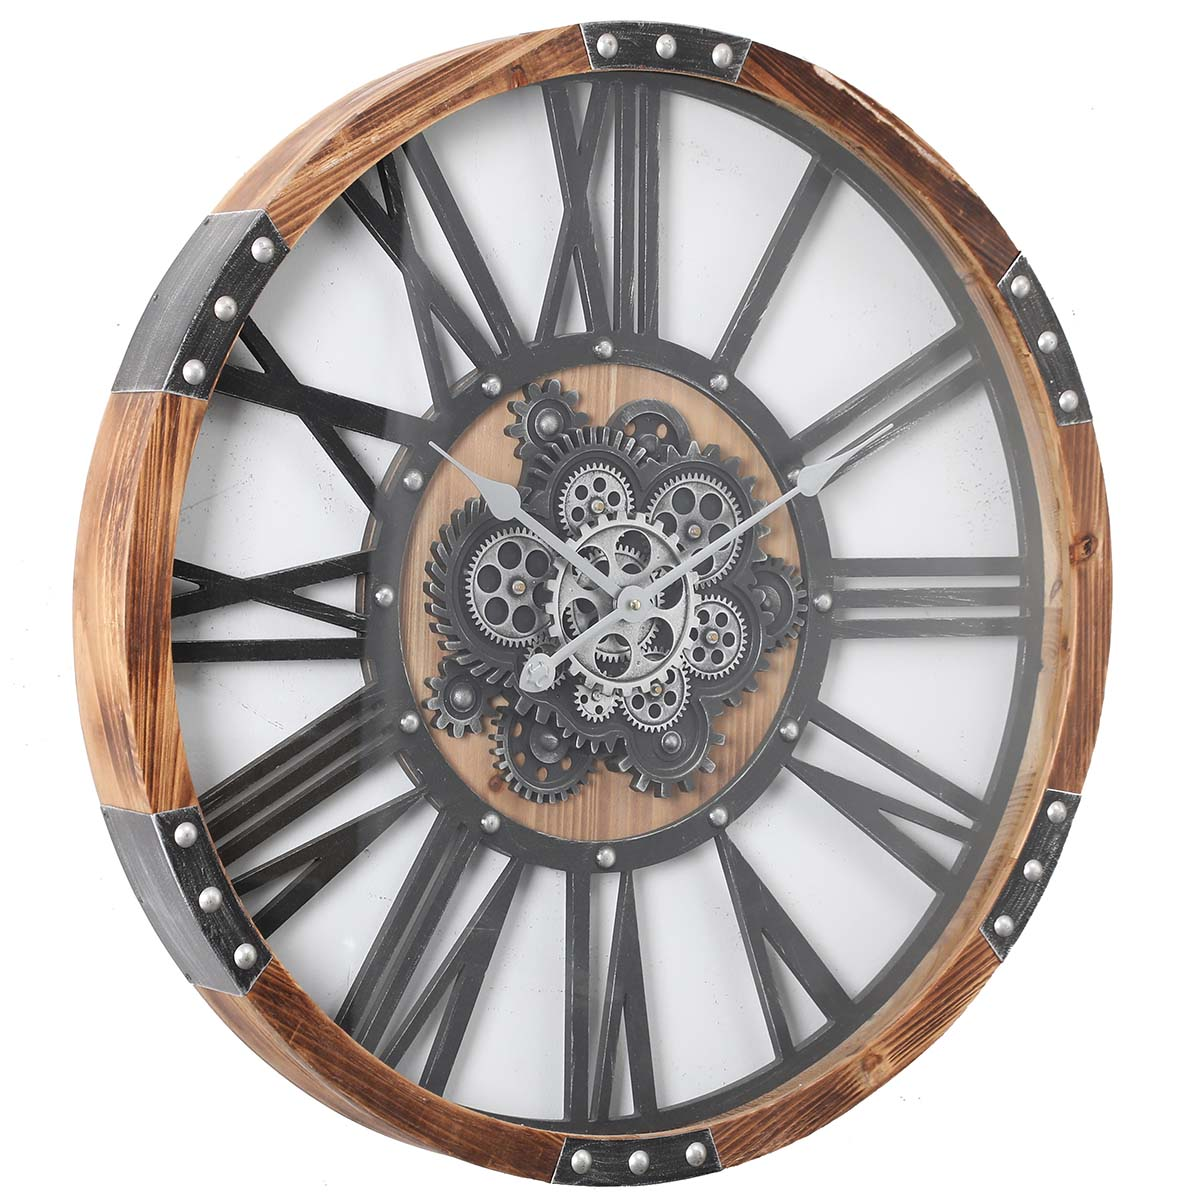 Chilli Decor Theo Industrial Country Wood Metal Moving Gears Wall Clock 73cm TQ-Y710 1